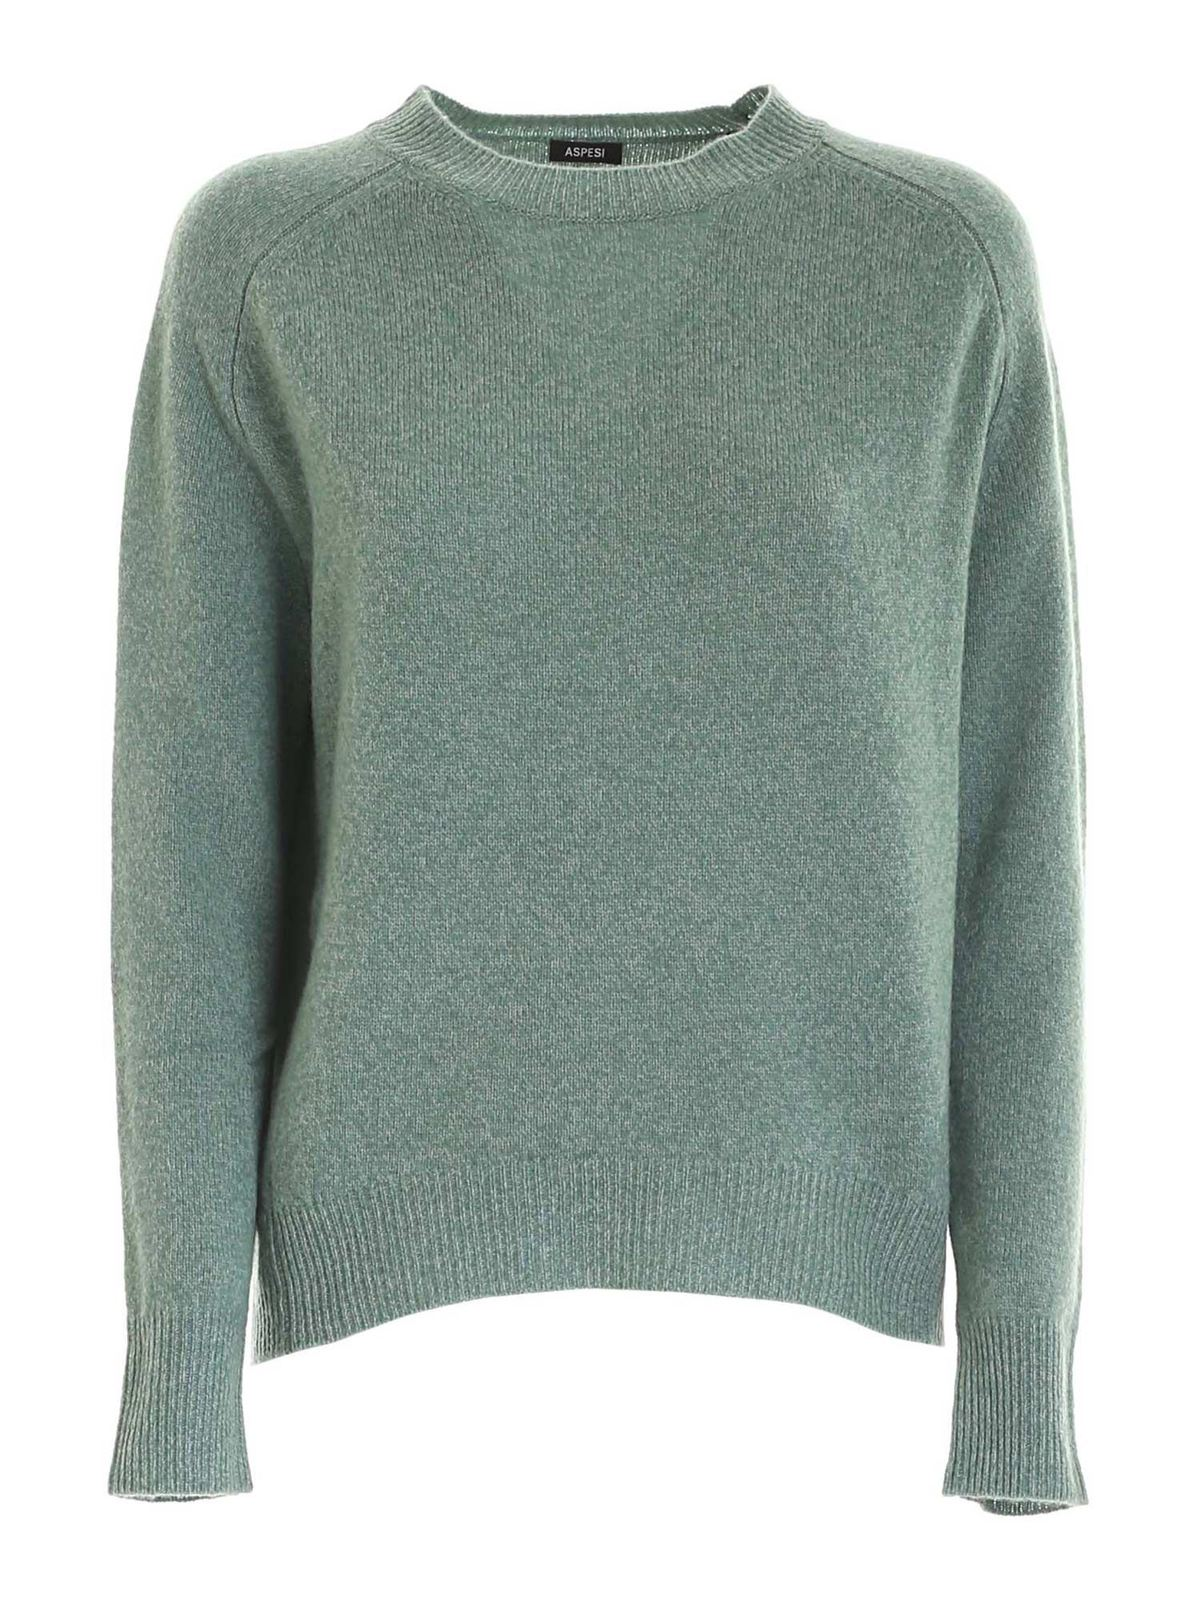 Aspesi WOOL PULLOVER IN MELANGE GREEN